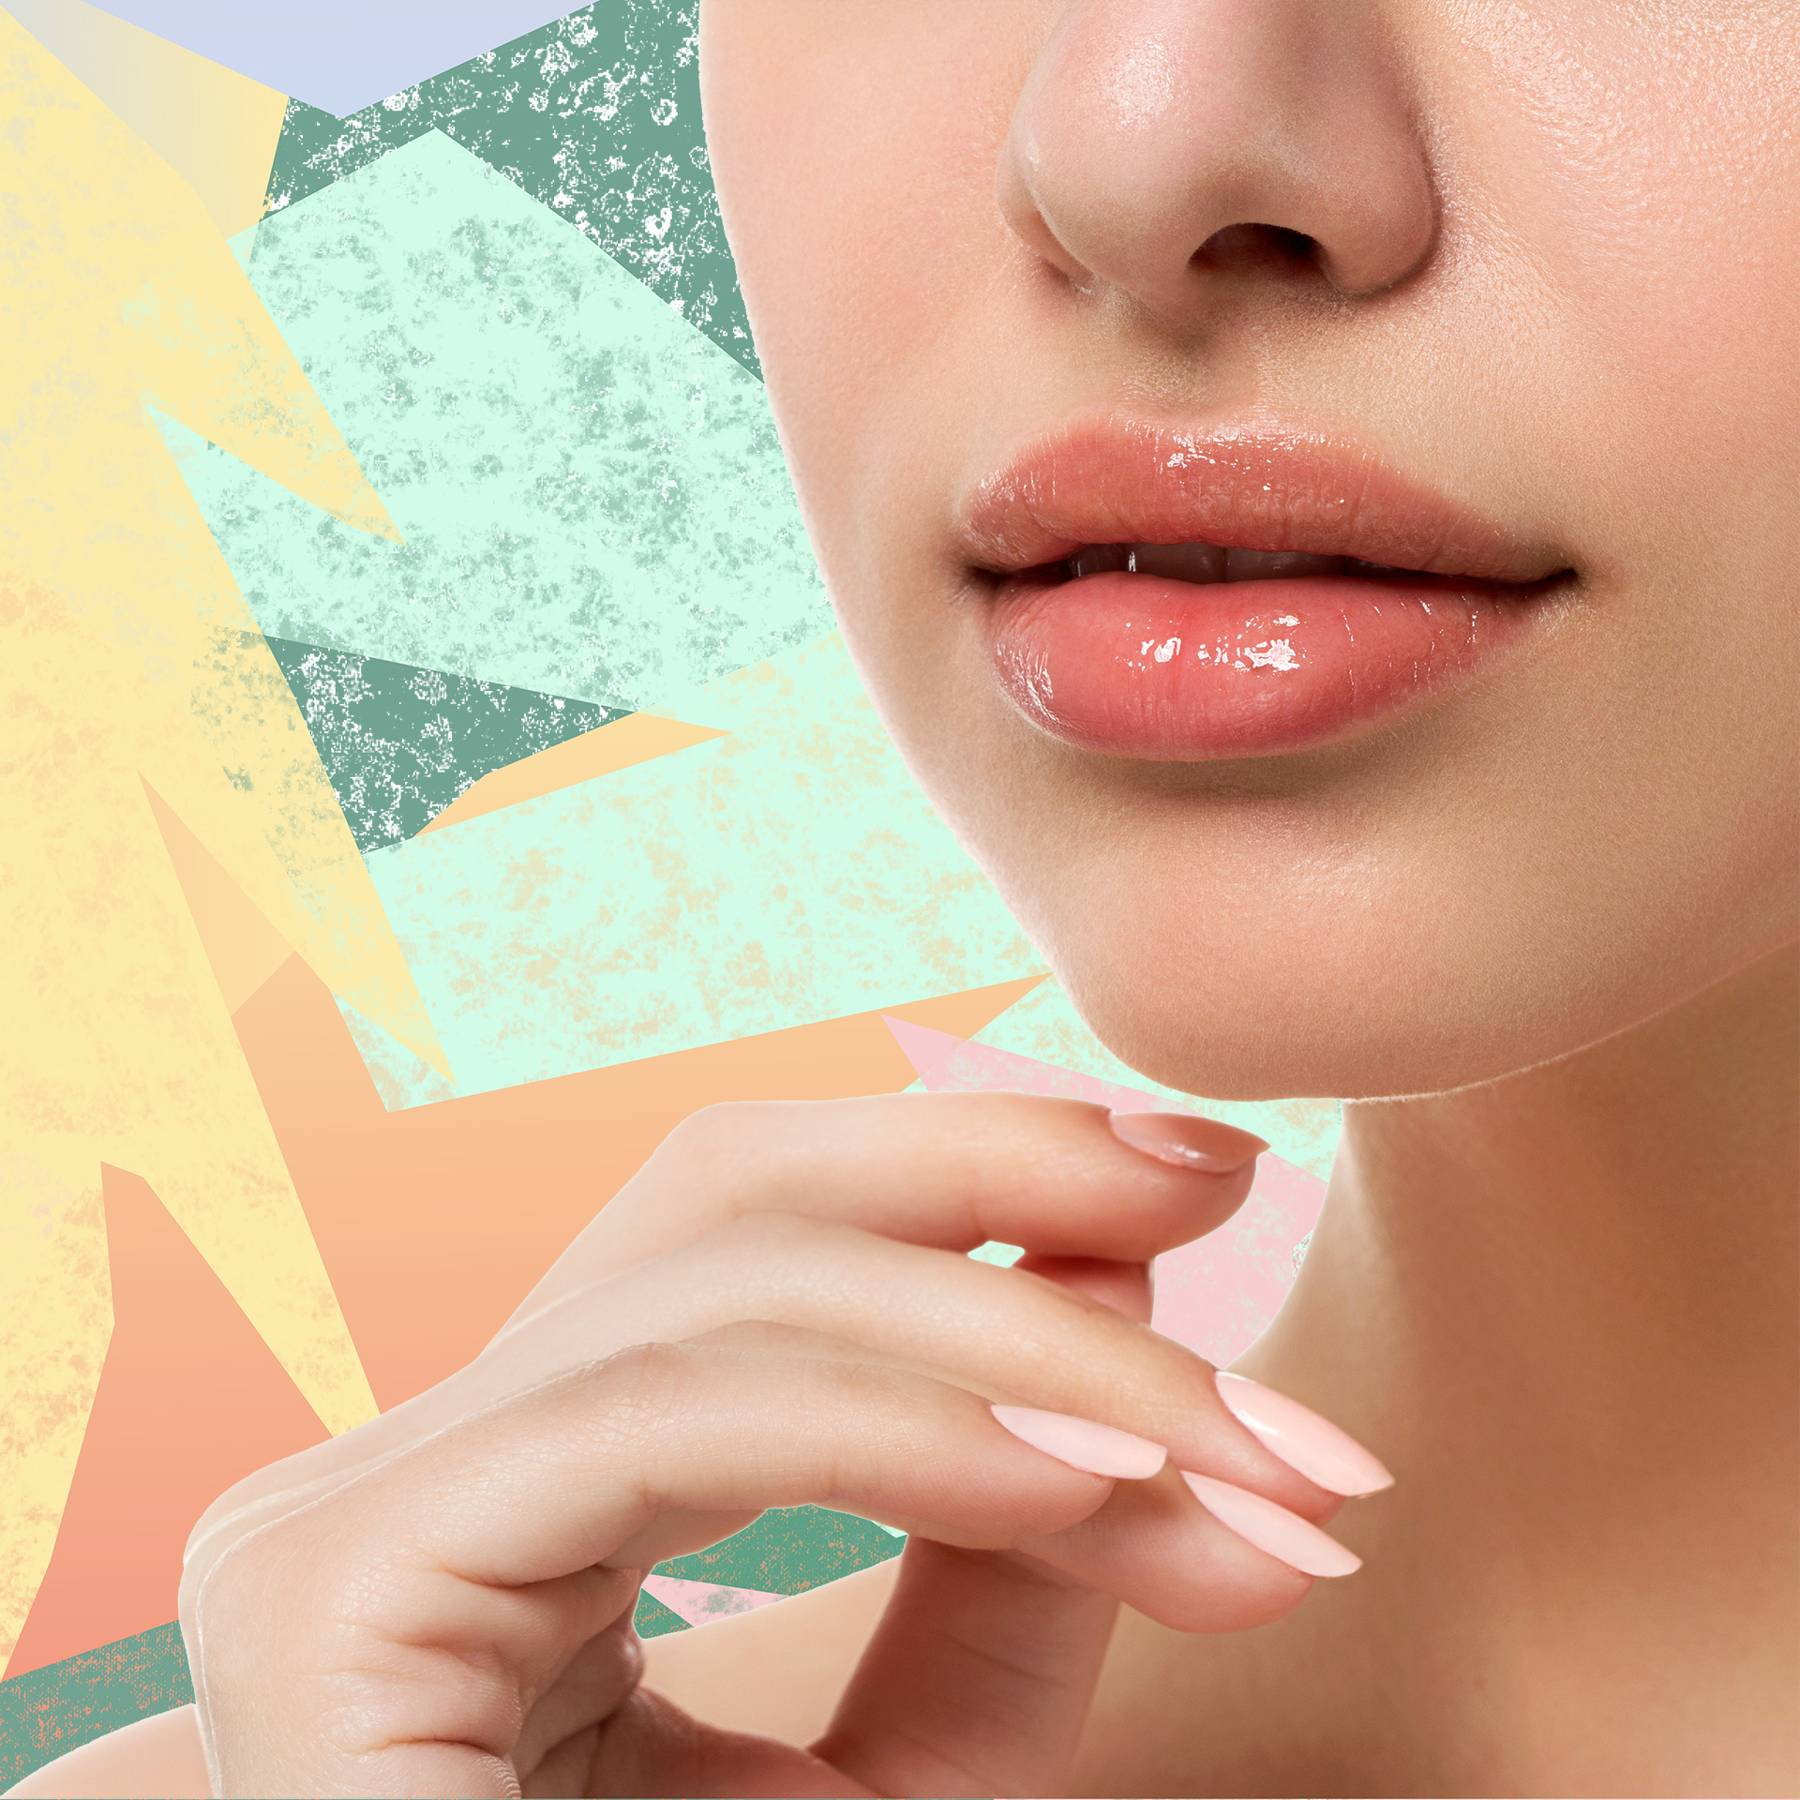 Ridges In Nails: Causes Of Nail Ridges And How To Treat Them ...